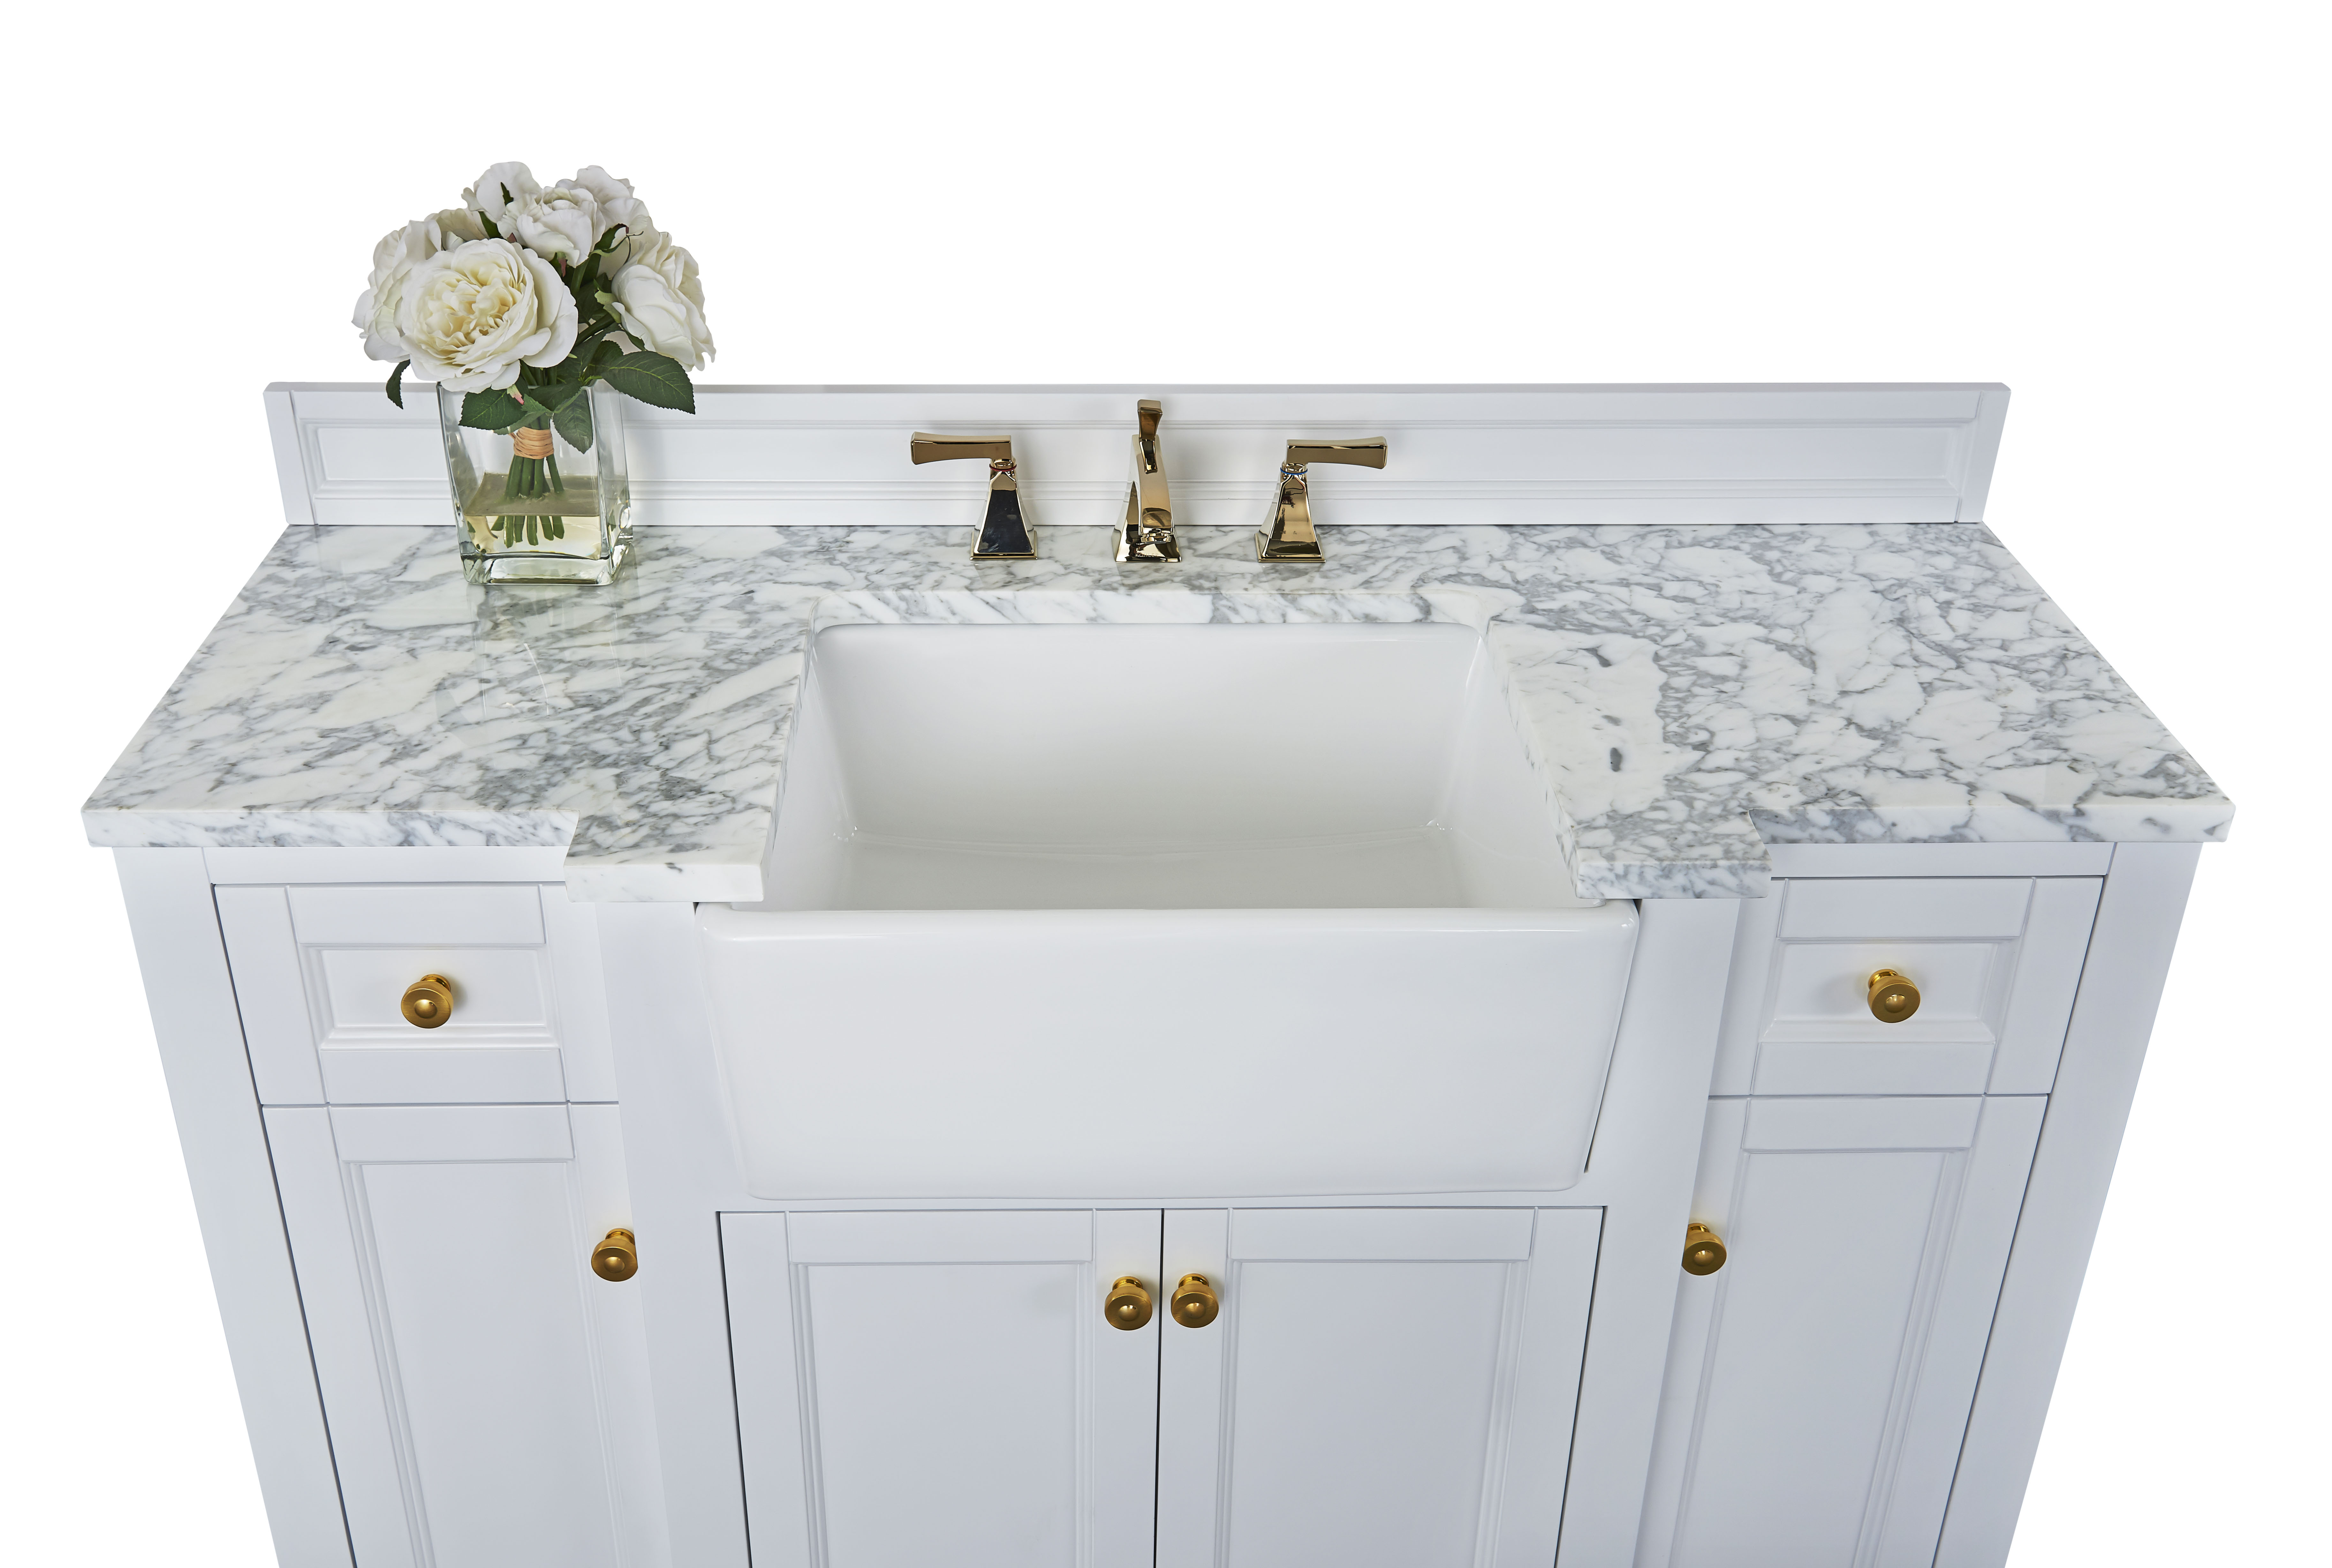 "48"" Bath Vanity Set in White with Italian Carrara White Marble Vanity Top and White Undermount Basin with Gold Hardware"